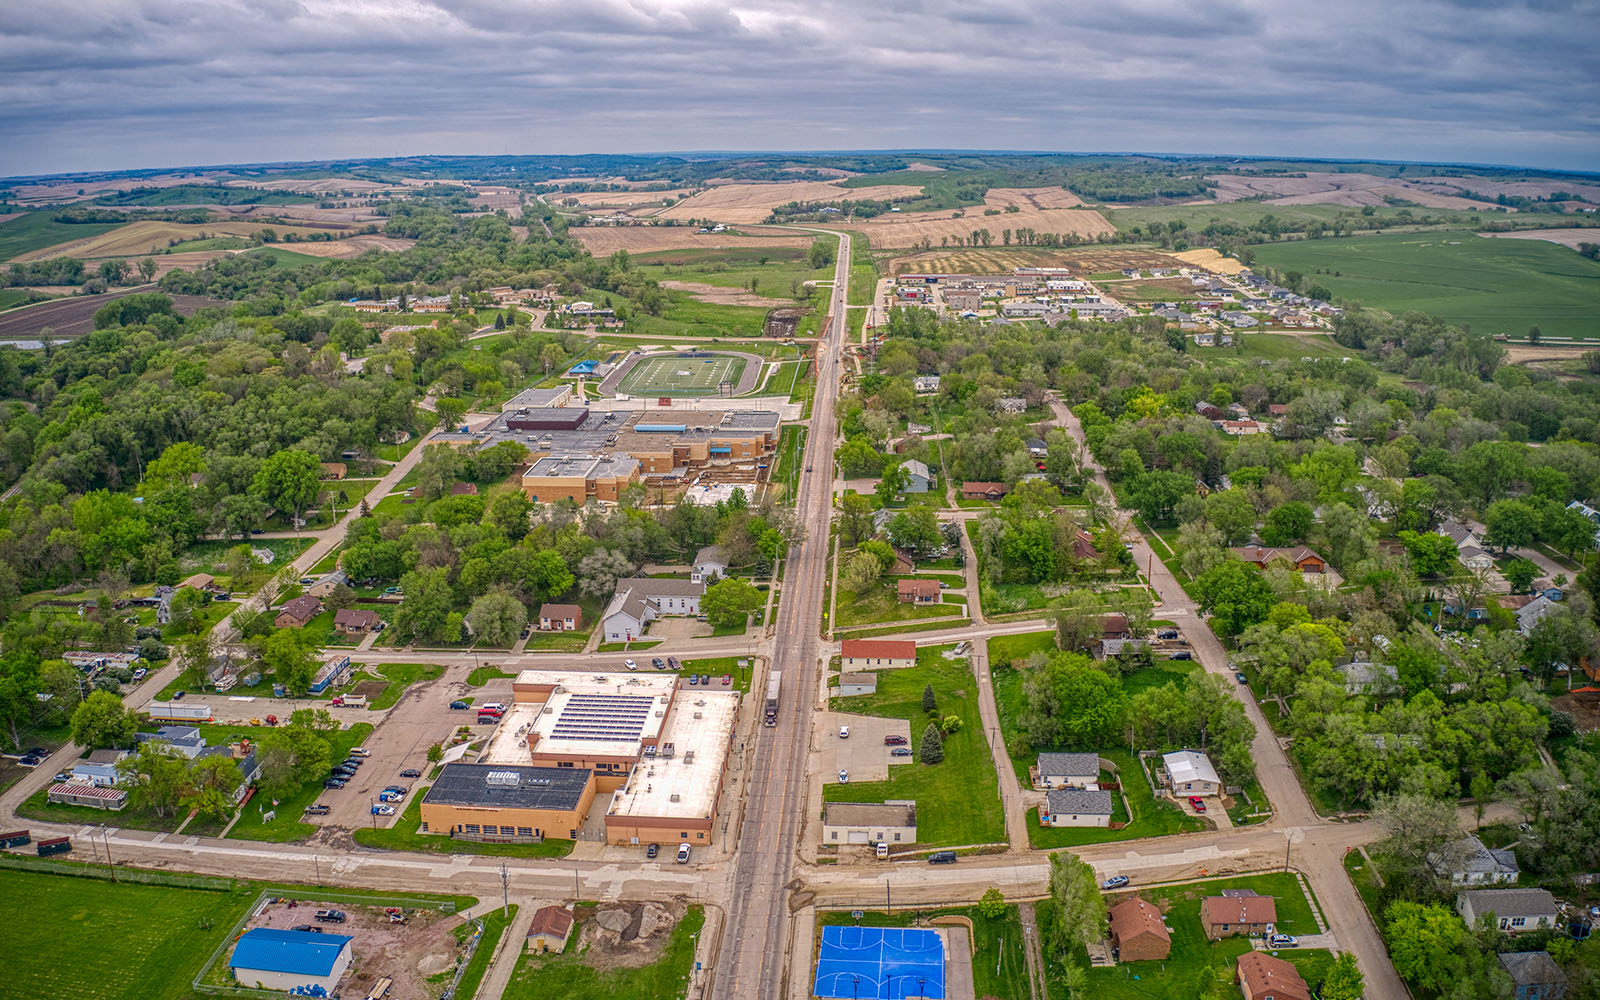 Aerial photo of Winnebago, Nebraska, home to the tribal council offices of the Winnebago Tribe of Nebraska